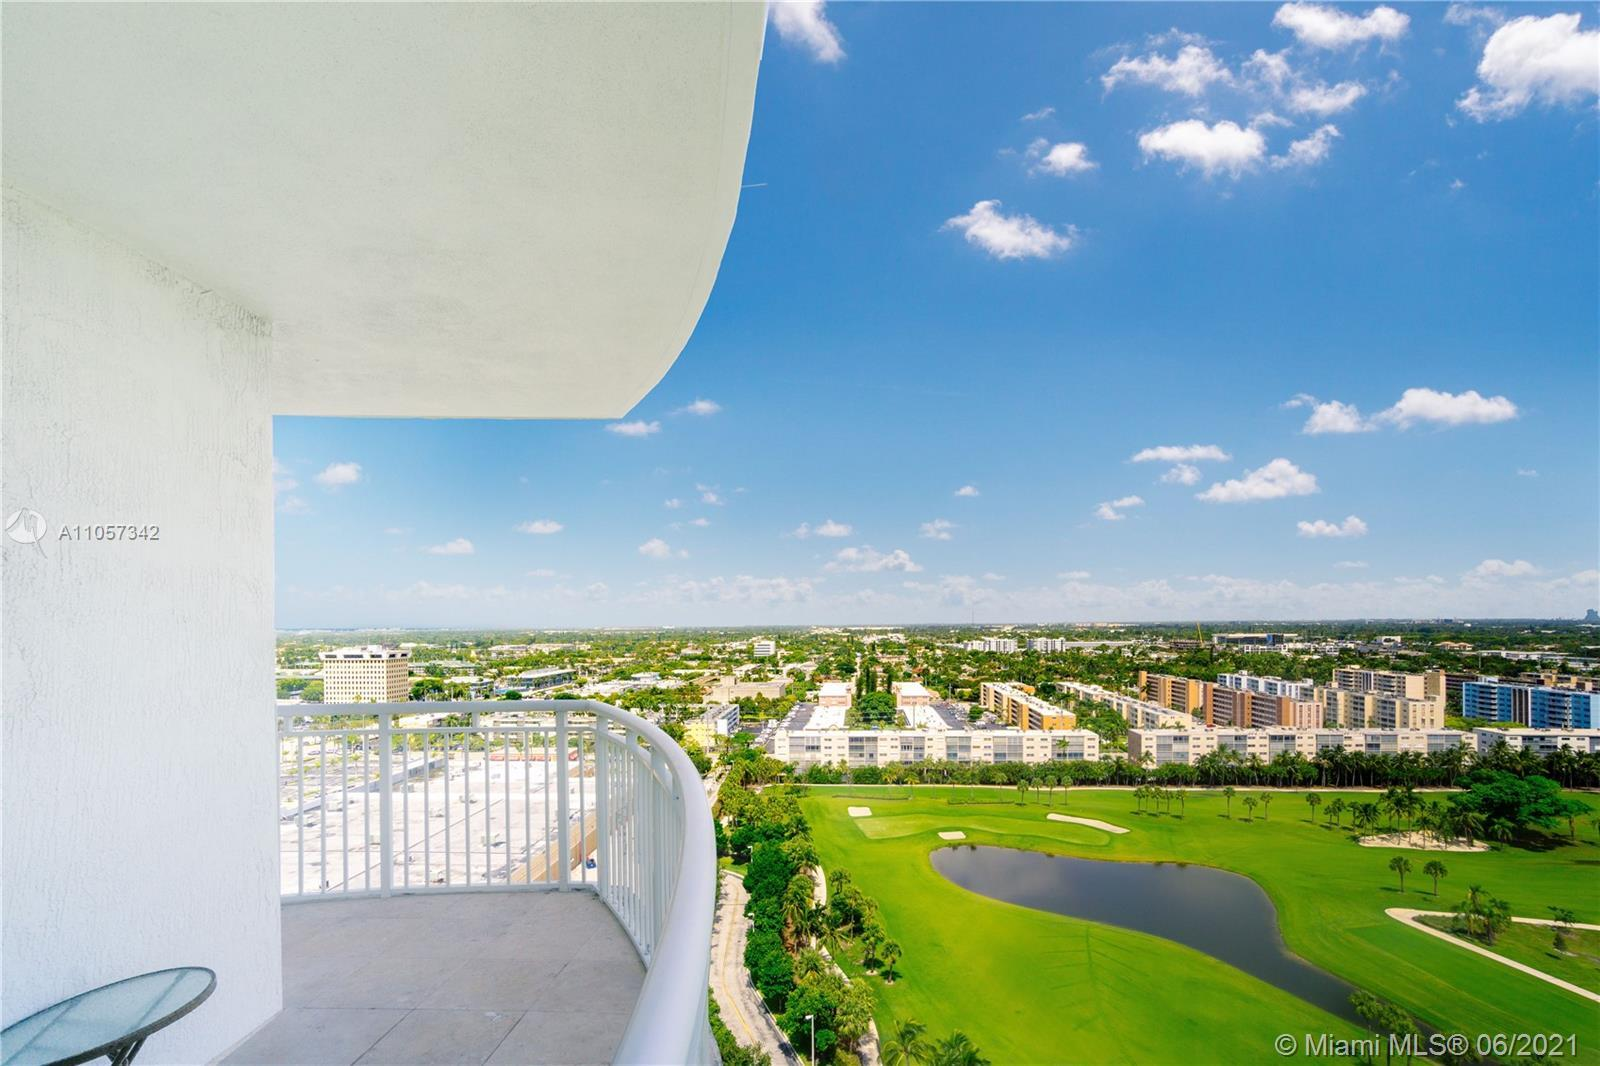 Spacious and bright 3 bedroom corner unit that is ready to move in.   Wrap around balcony withwith